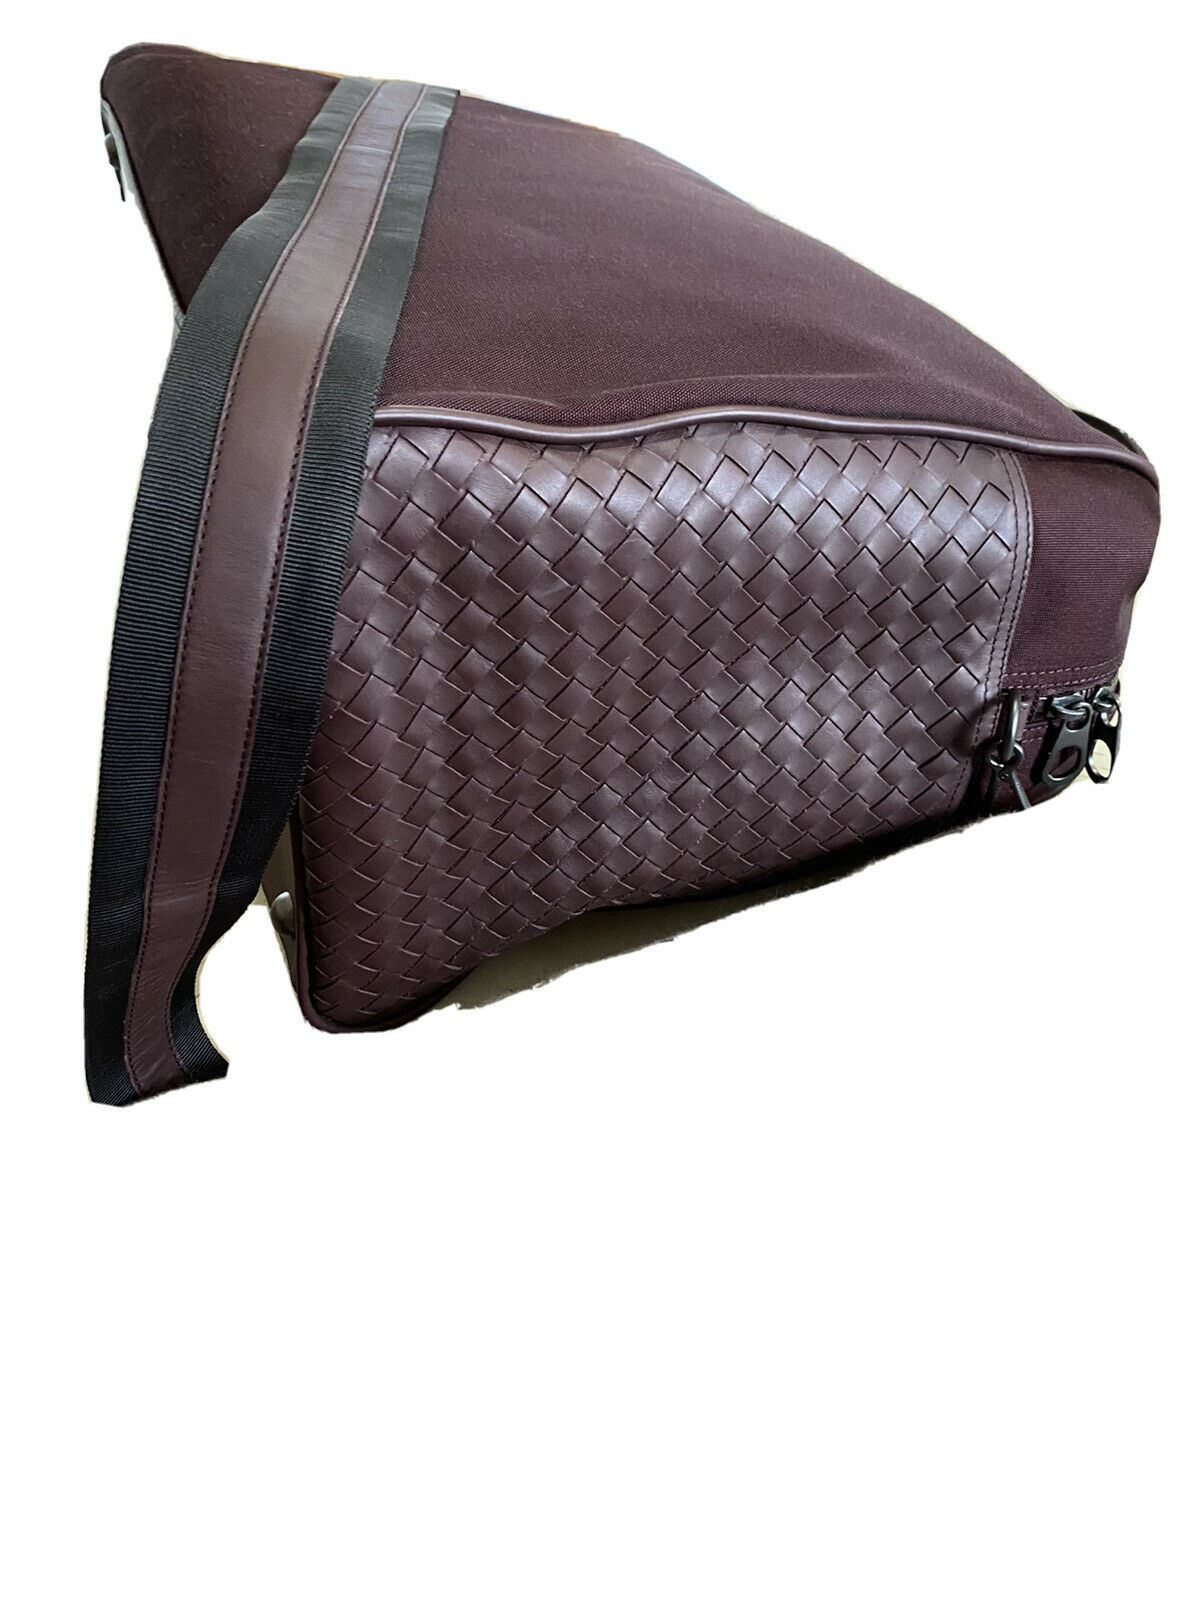 New $2750 Bottega Veneta Men Leather/Canvas Travel Bag Burgundy Italy